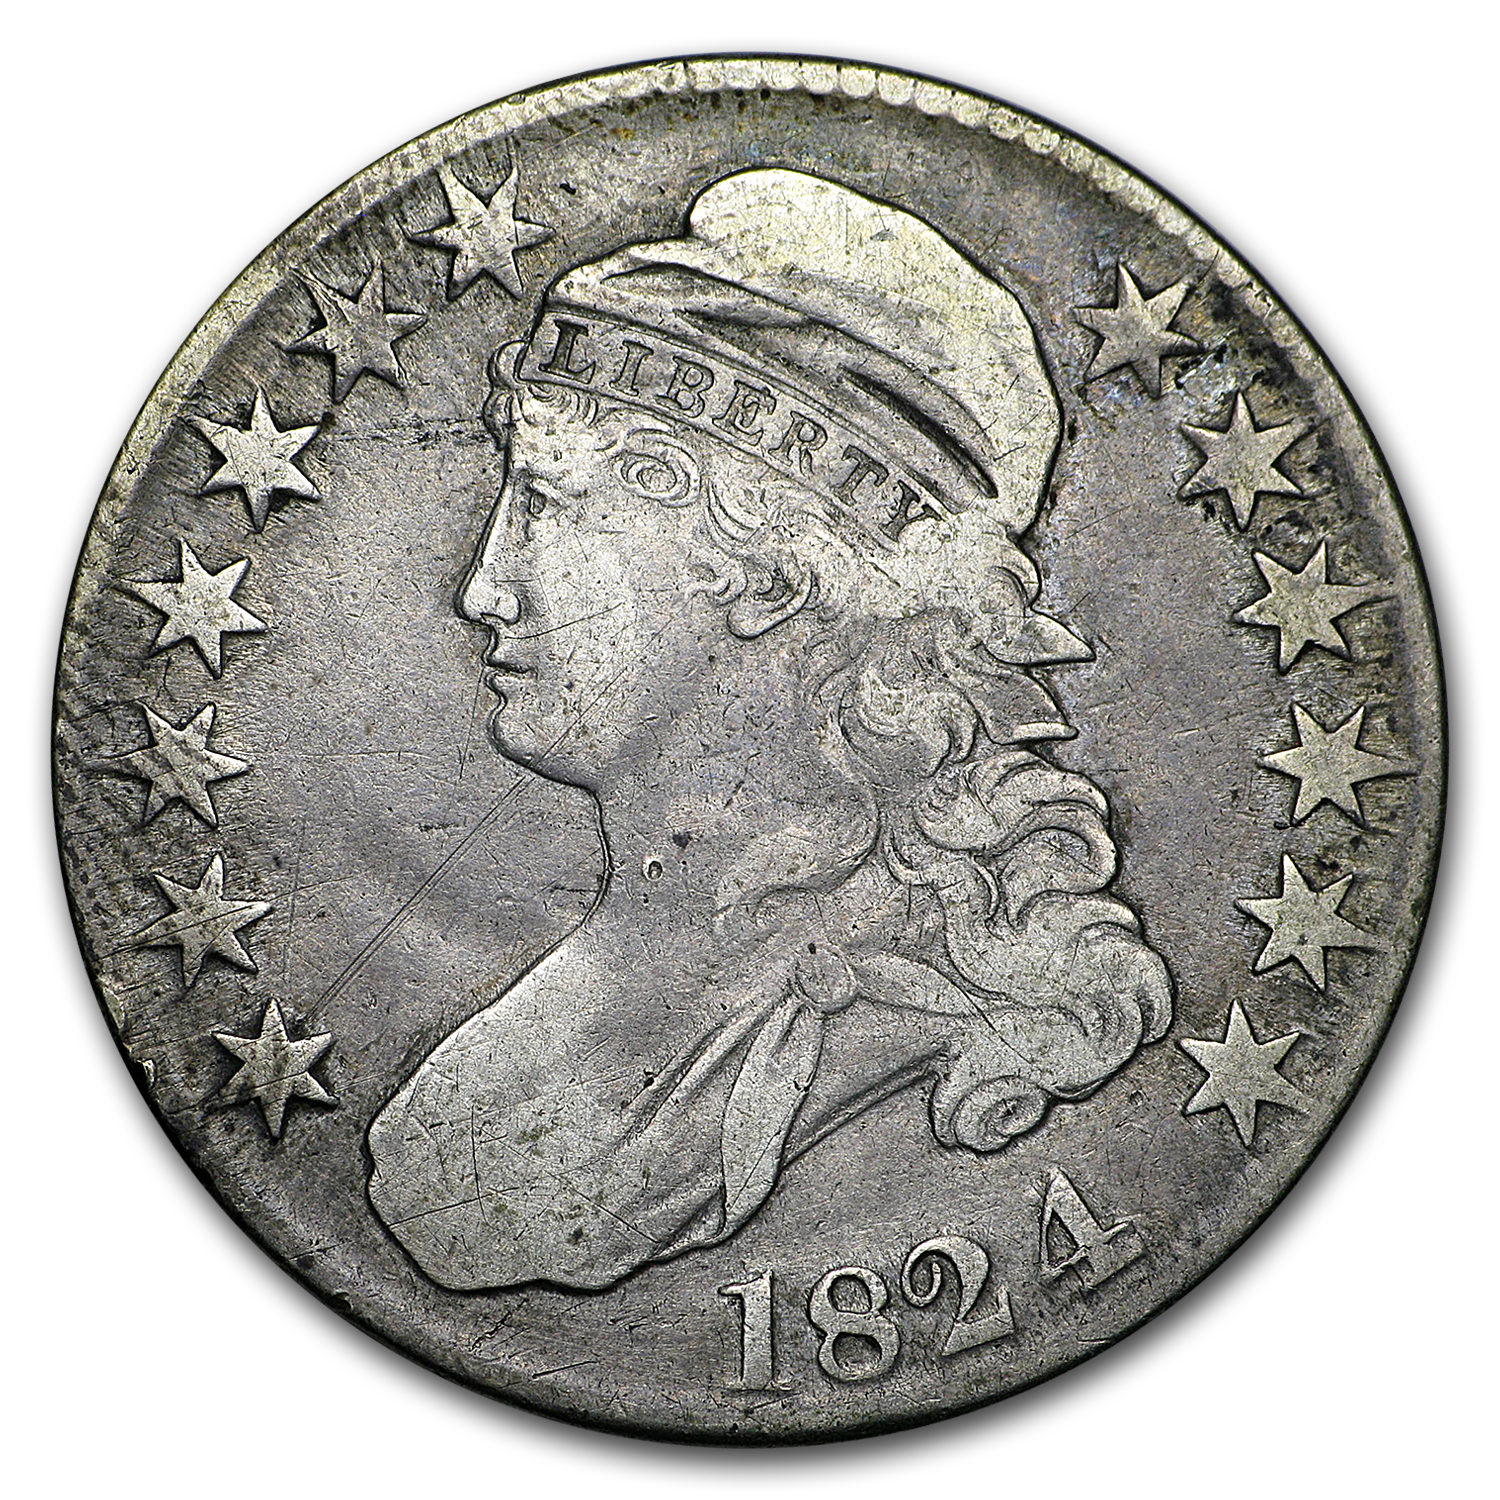 1824/4 Capped Bust Half Dollar VF (Bent)